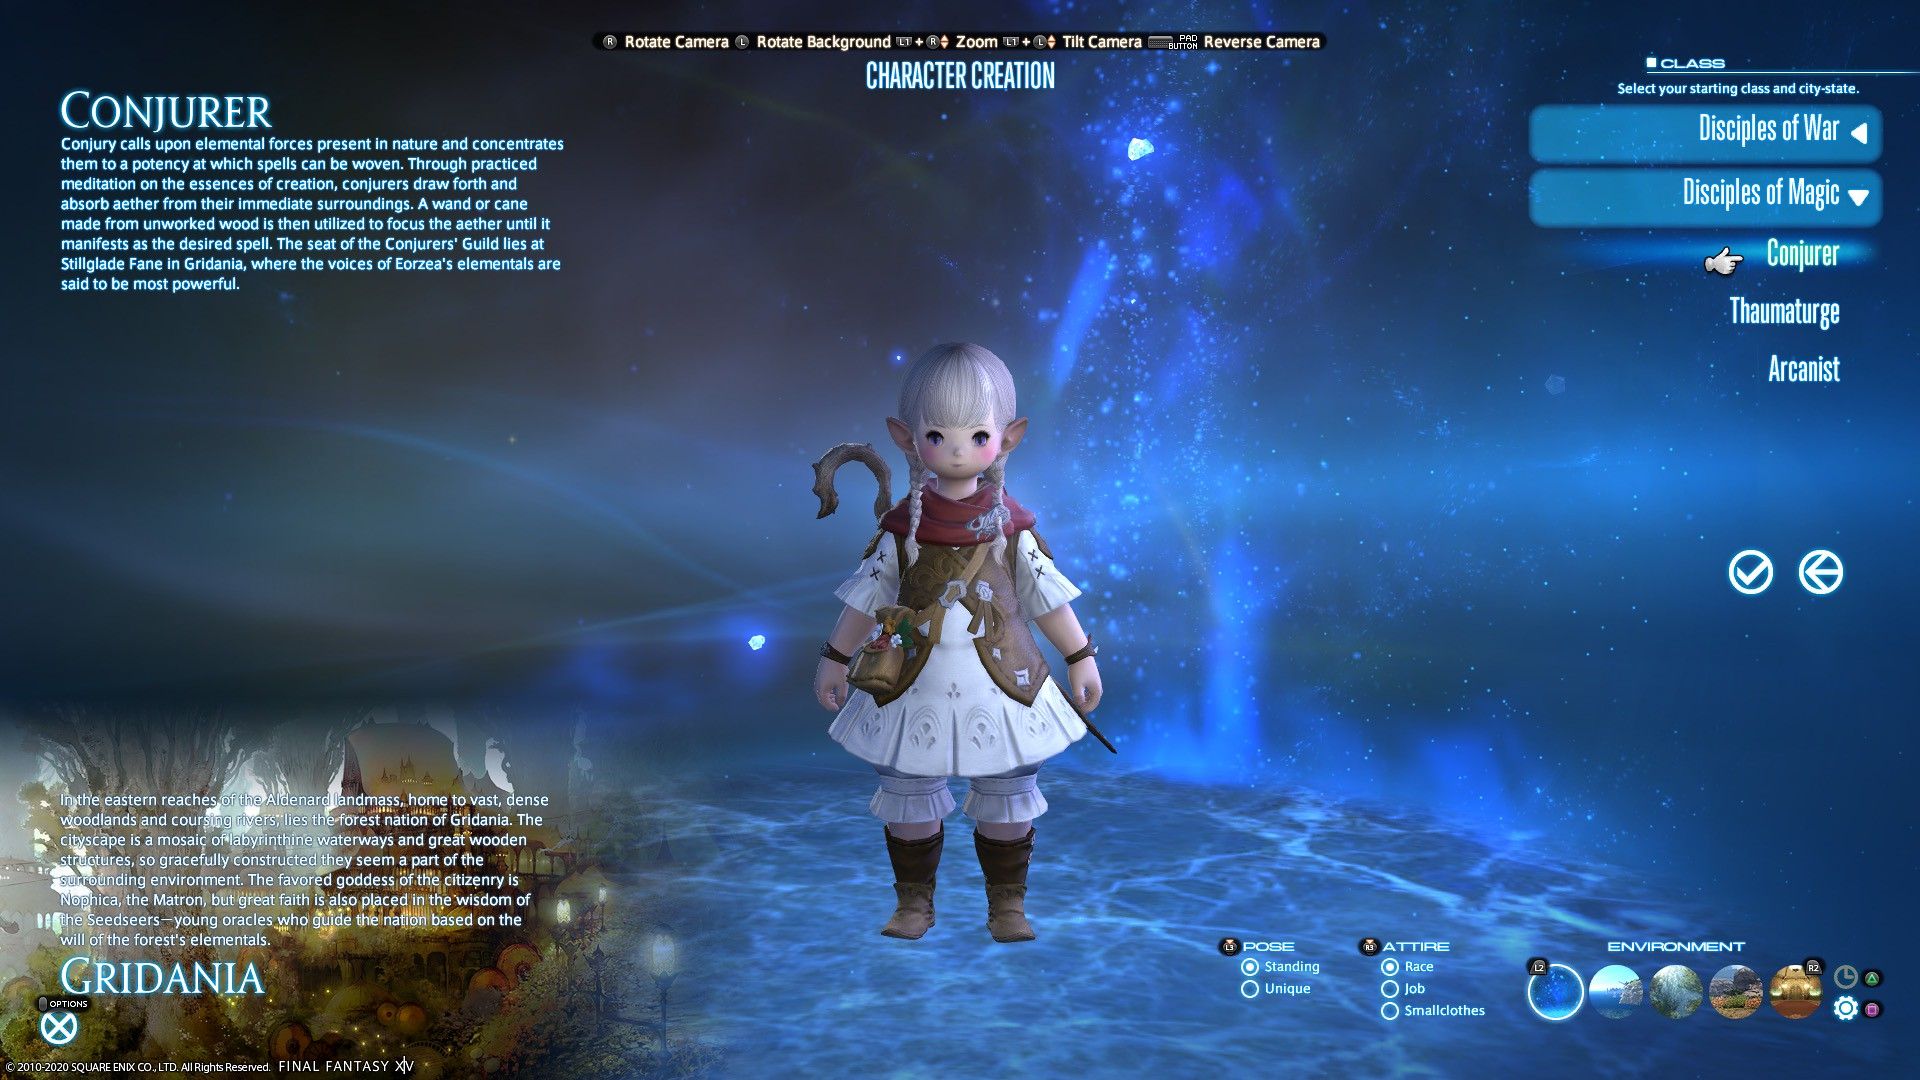 Final Fantasy Xiv Online Patch 5 3 Live Tomorrow With Major Updates For Newcomers Playstation Blog